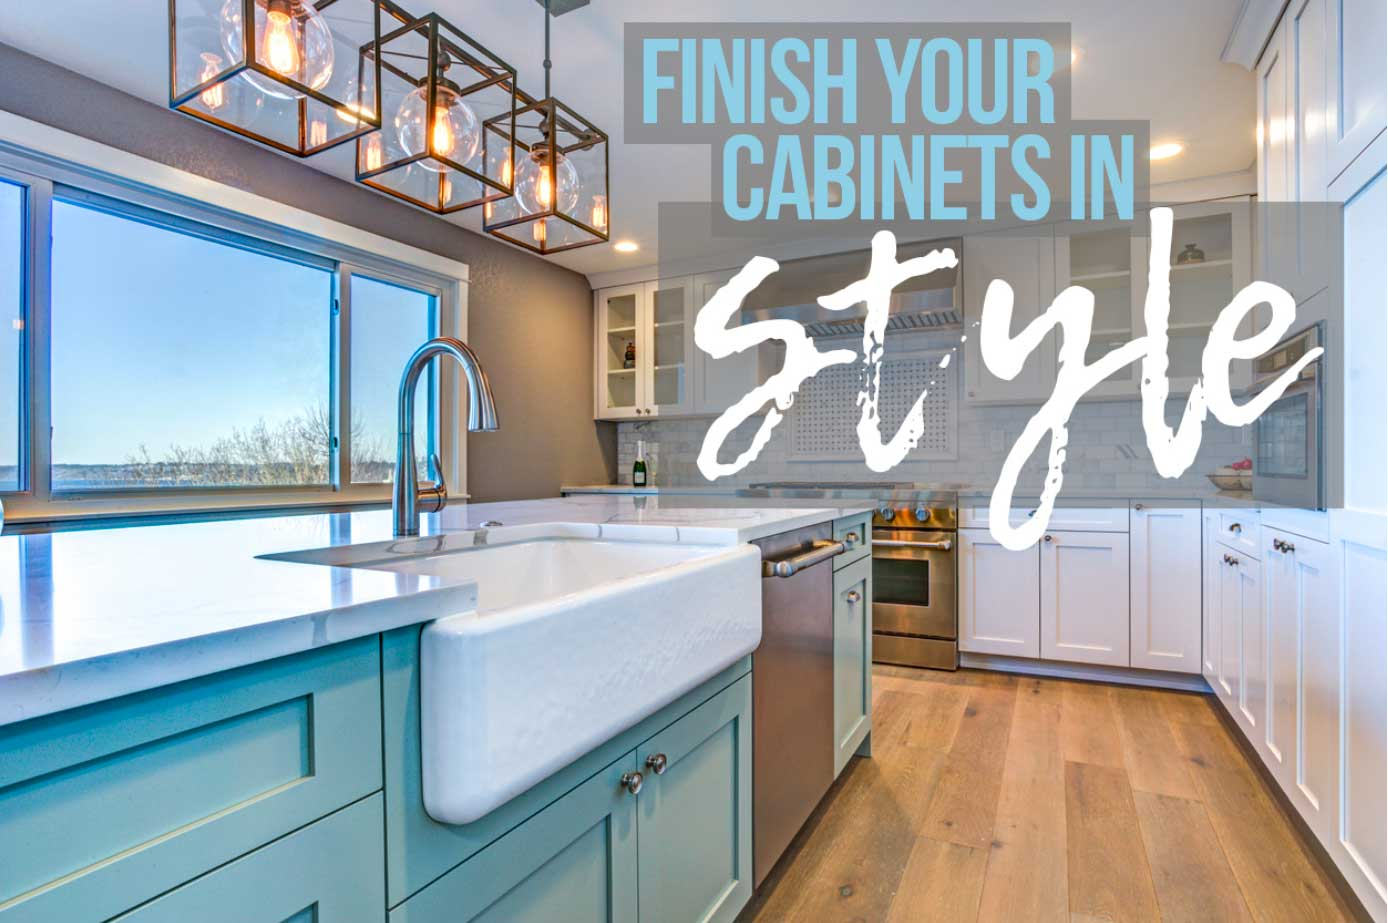 Complete Guide to Finishing Cabinets